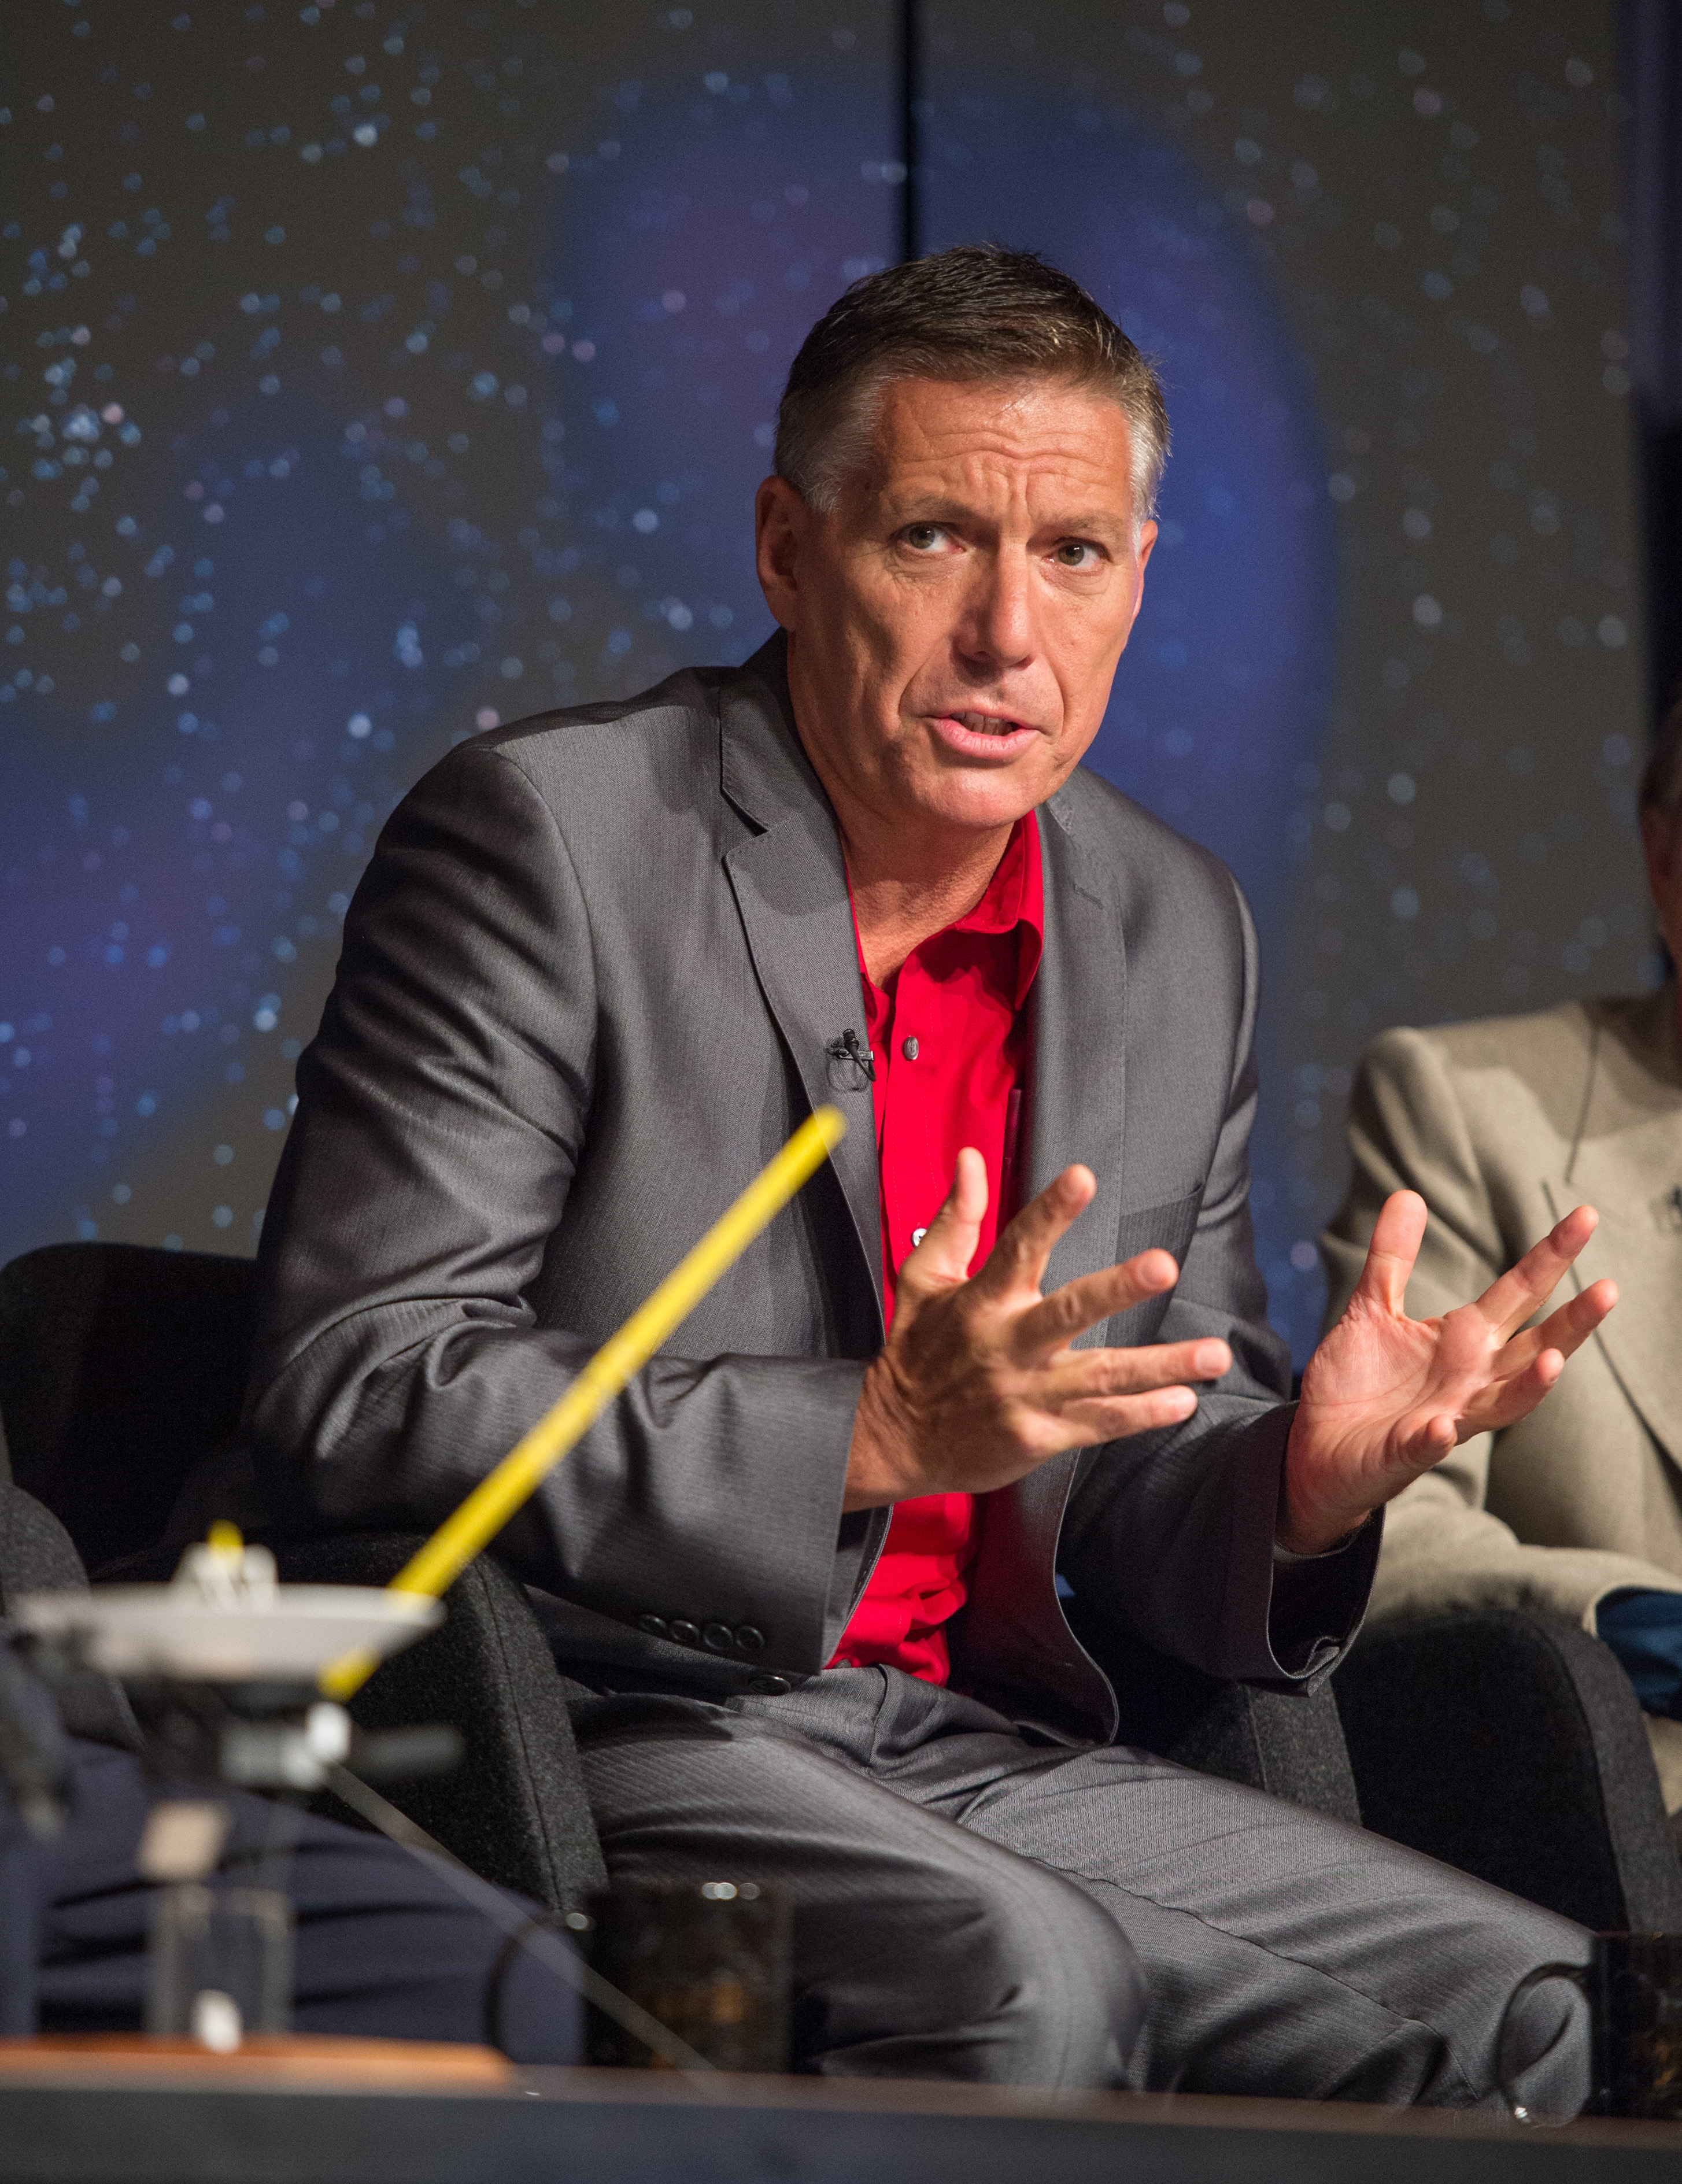 Sept. 12, 2013: Gary Zank Speaks at Voyager 1 Press Conference